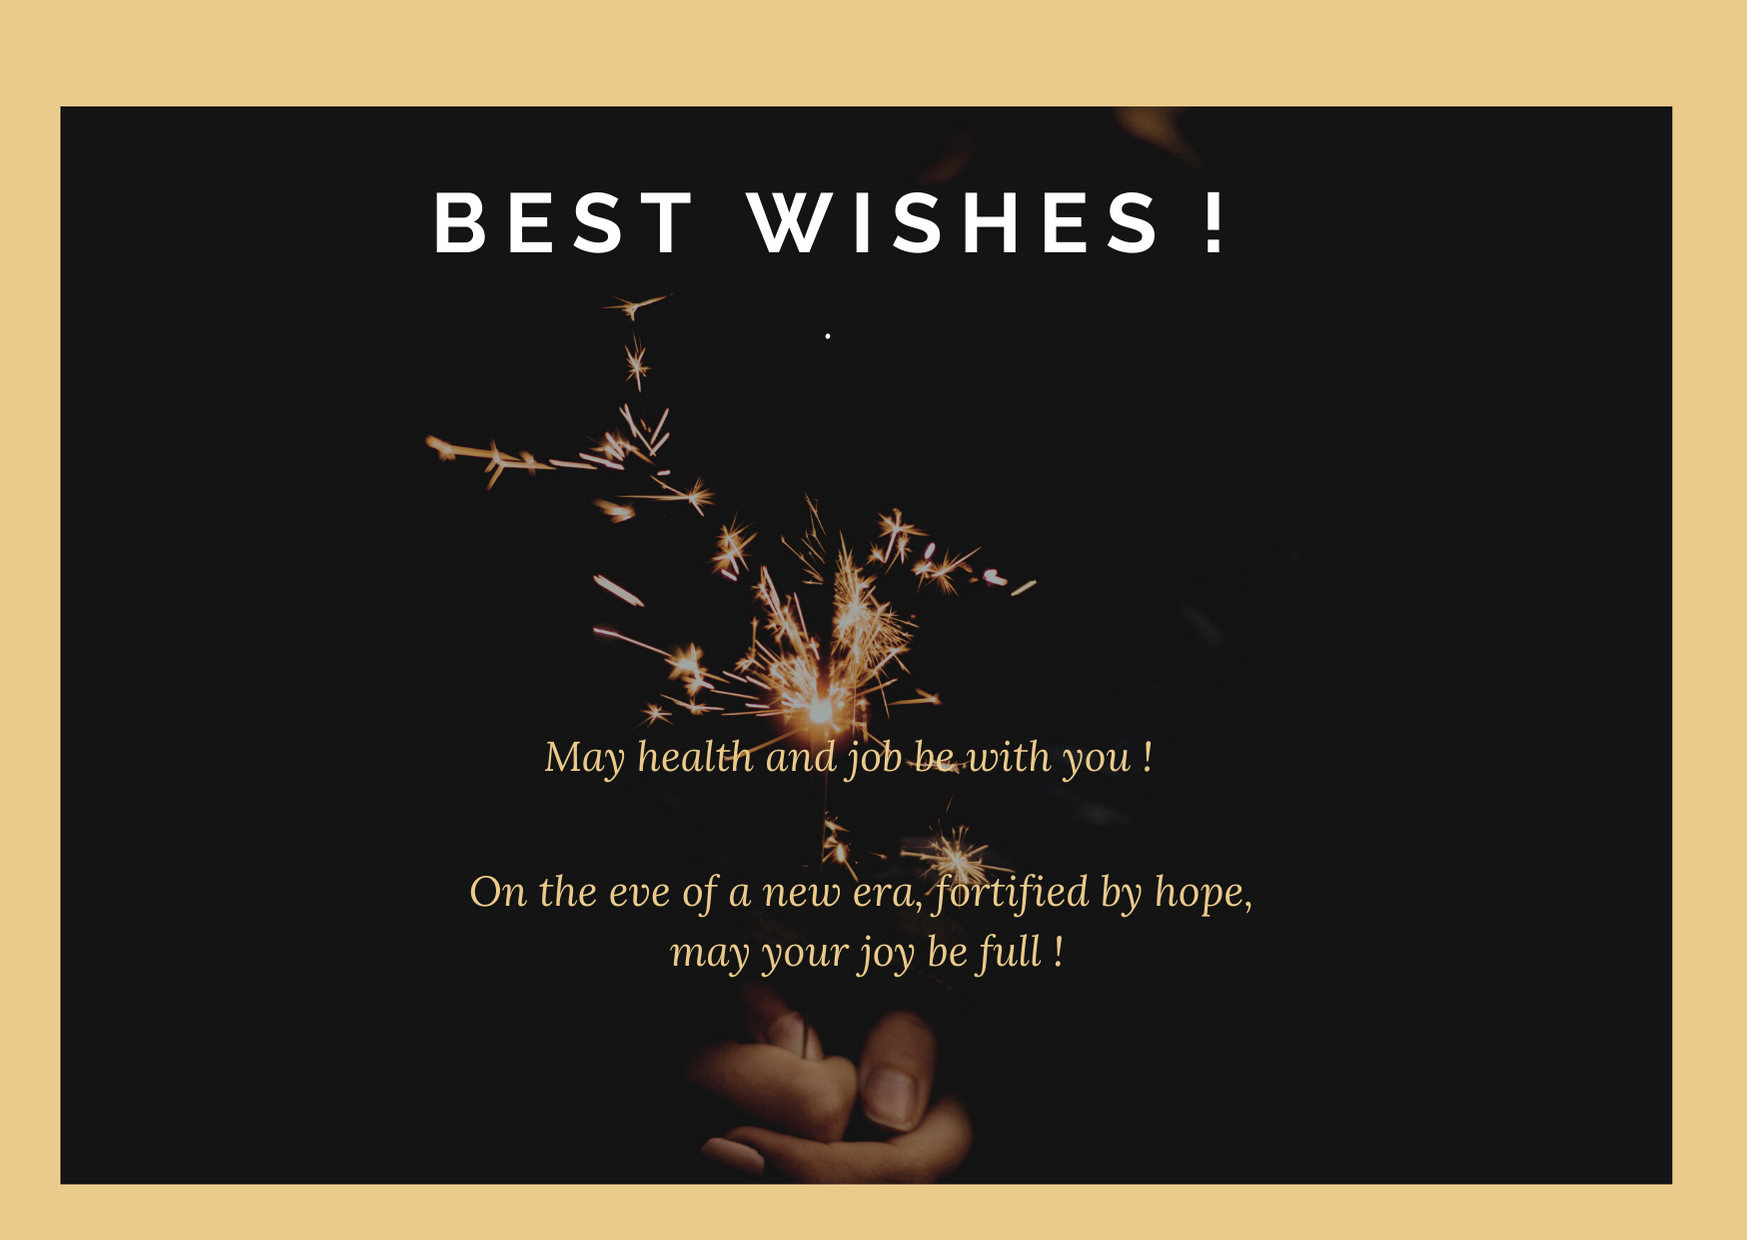 BEST WISHES